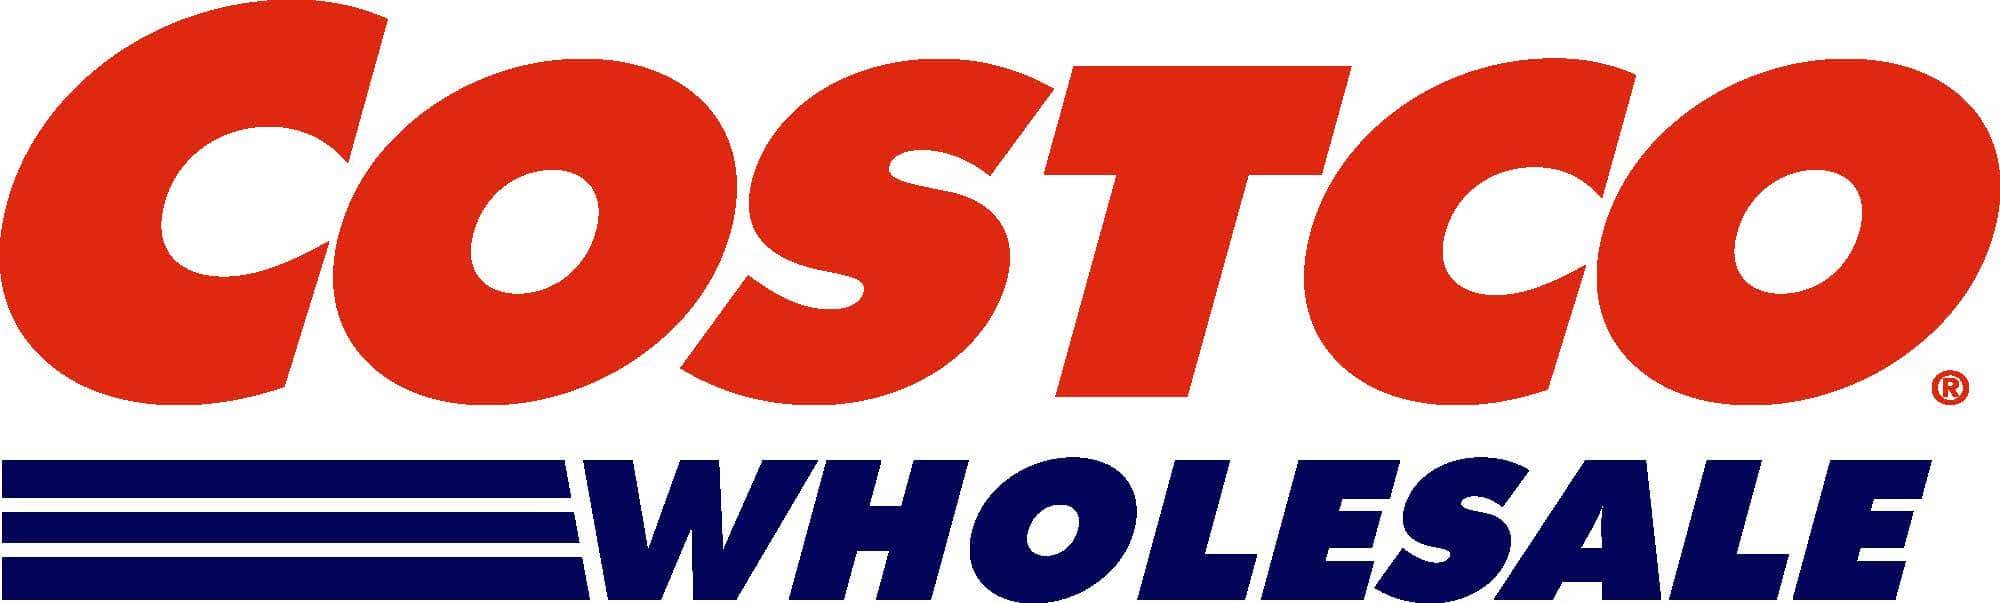 Costco.com $25 off $250 coupon available in store